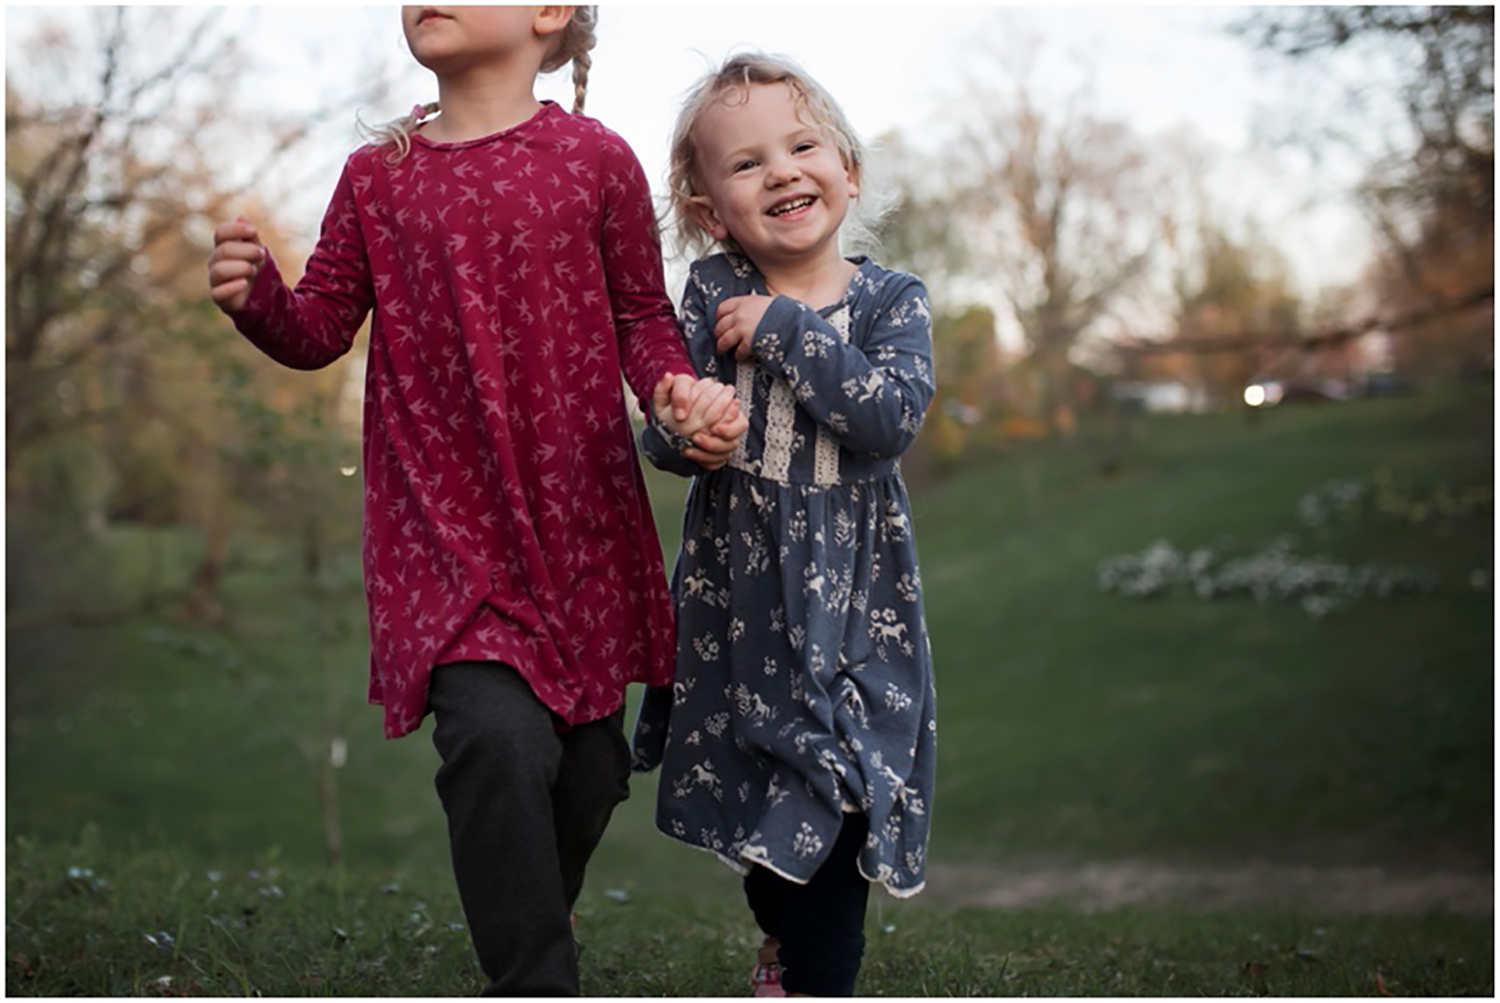 Rochester NY Family Photographer, sisters holding hands running together